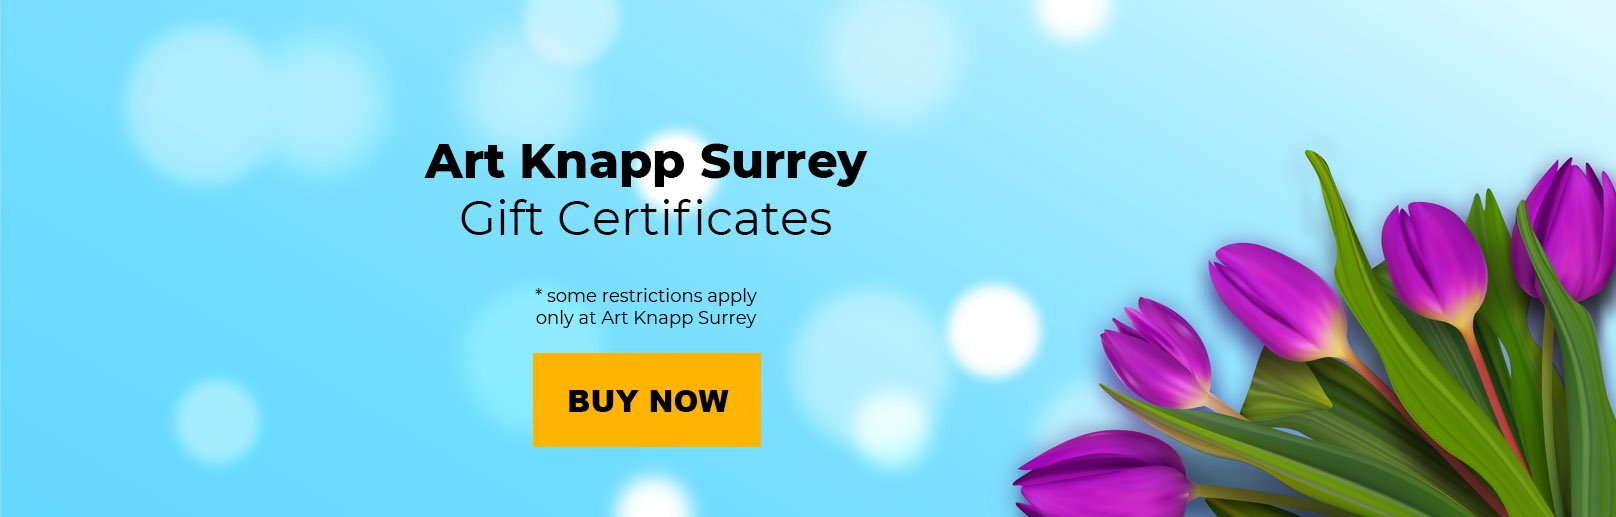 Art Knapp Gift Cards